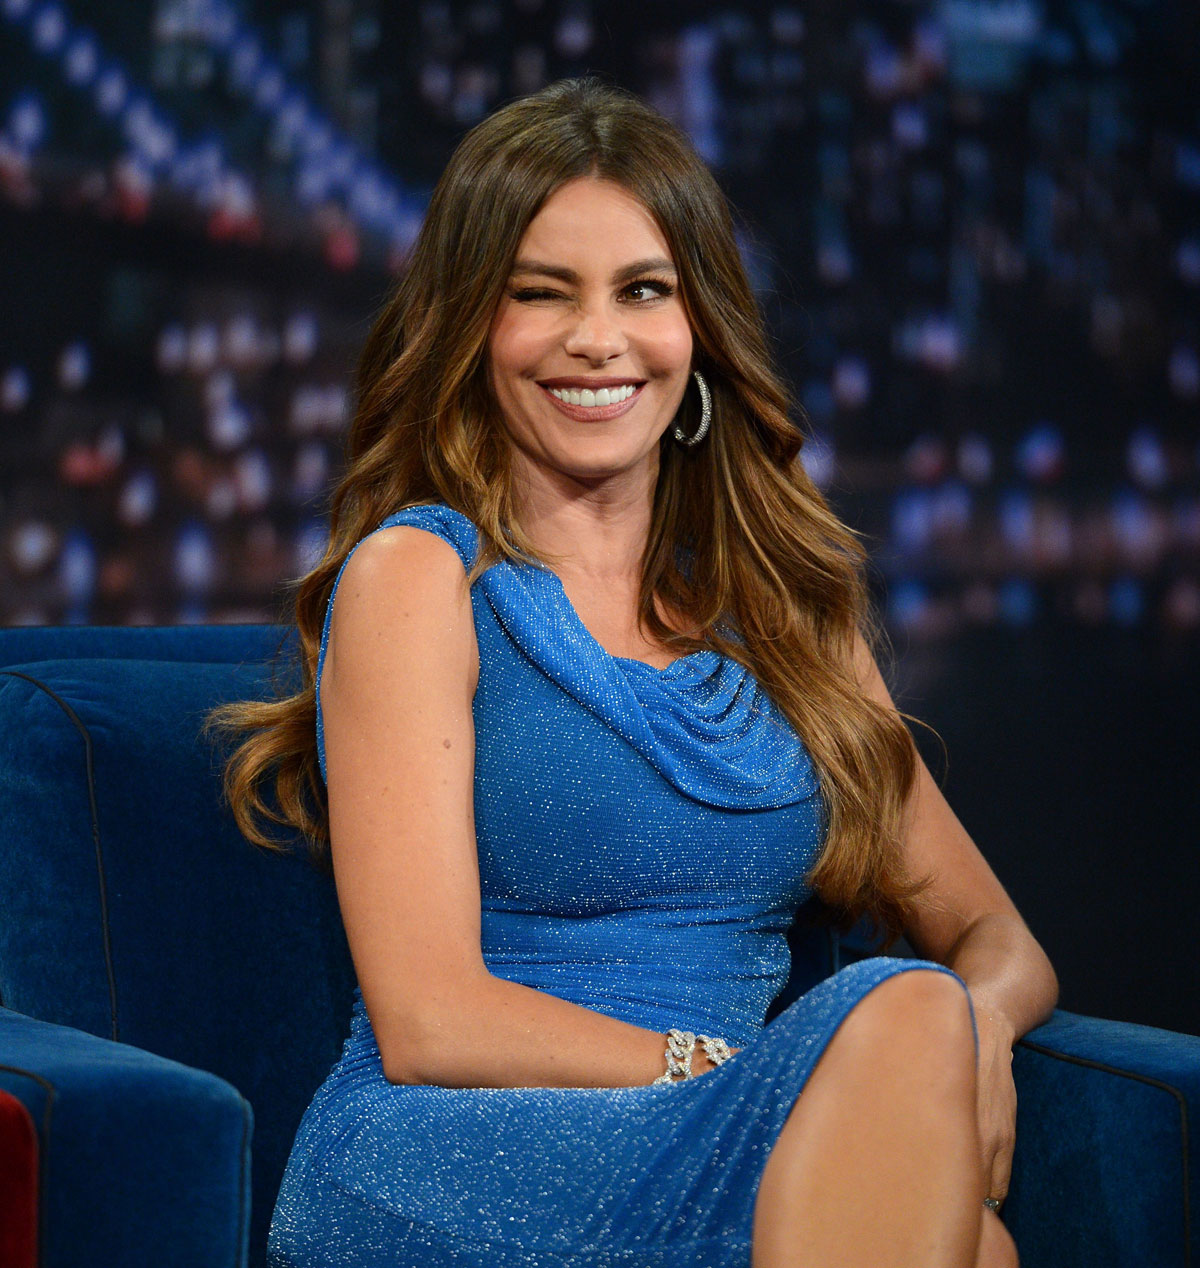 Sofía Vergara Net Worth, Age, Height, Husband, Profile, Movies